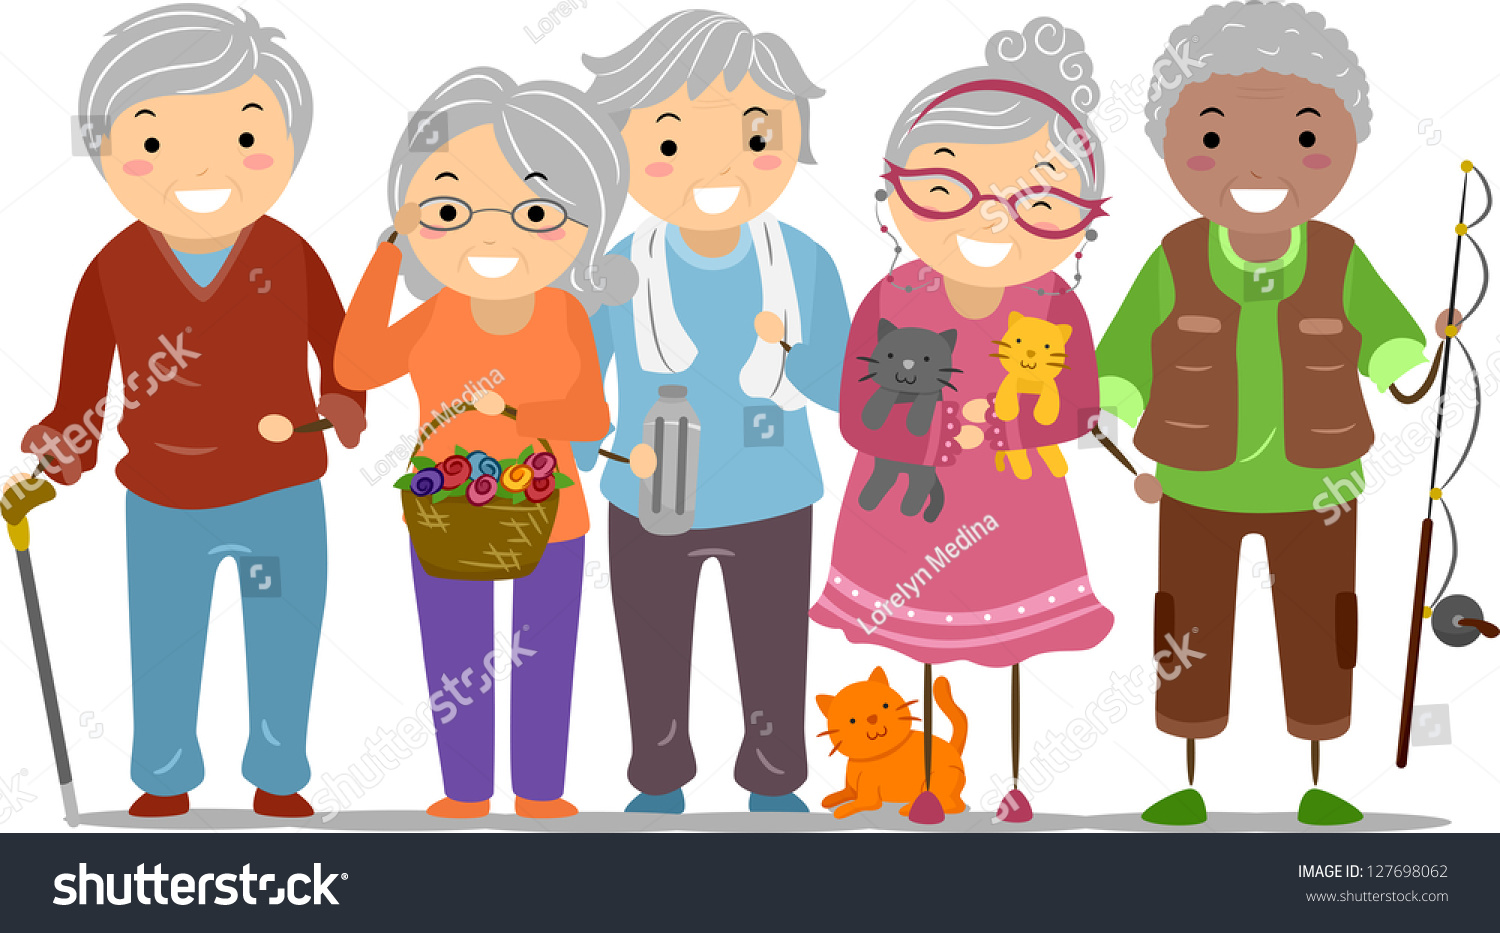 Stock illustrations senior citizen lady with a sign stock clipart - Illustration Stickman Senior Citizens Stock Vector